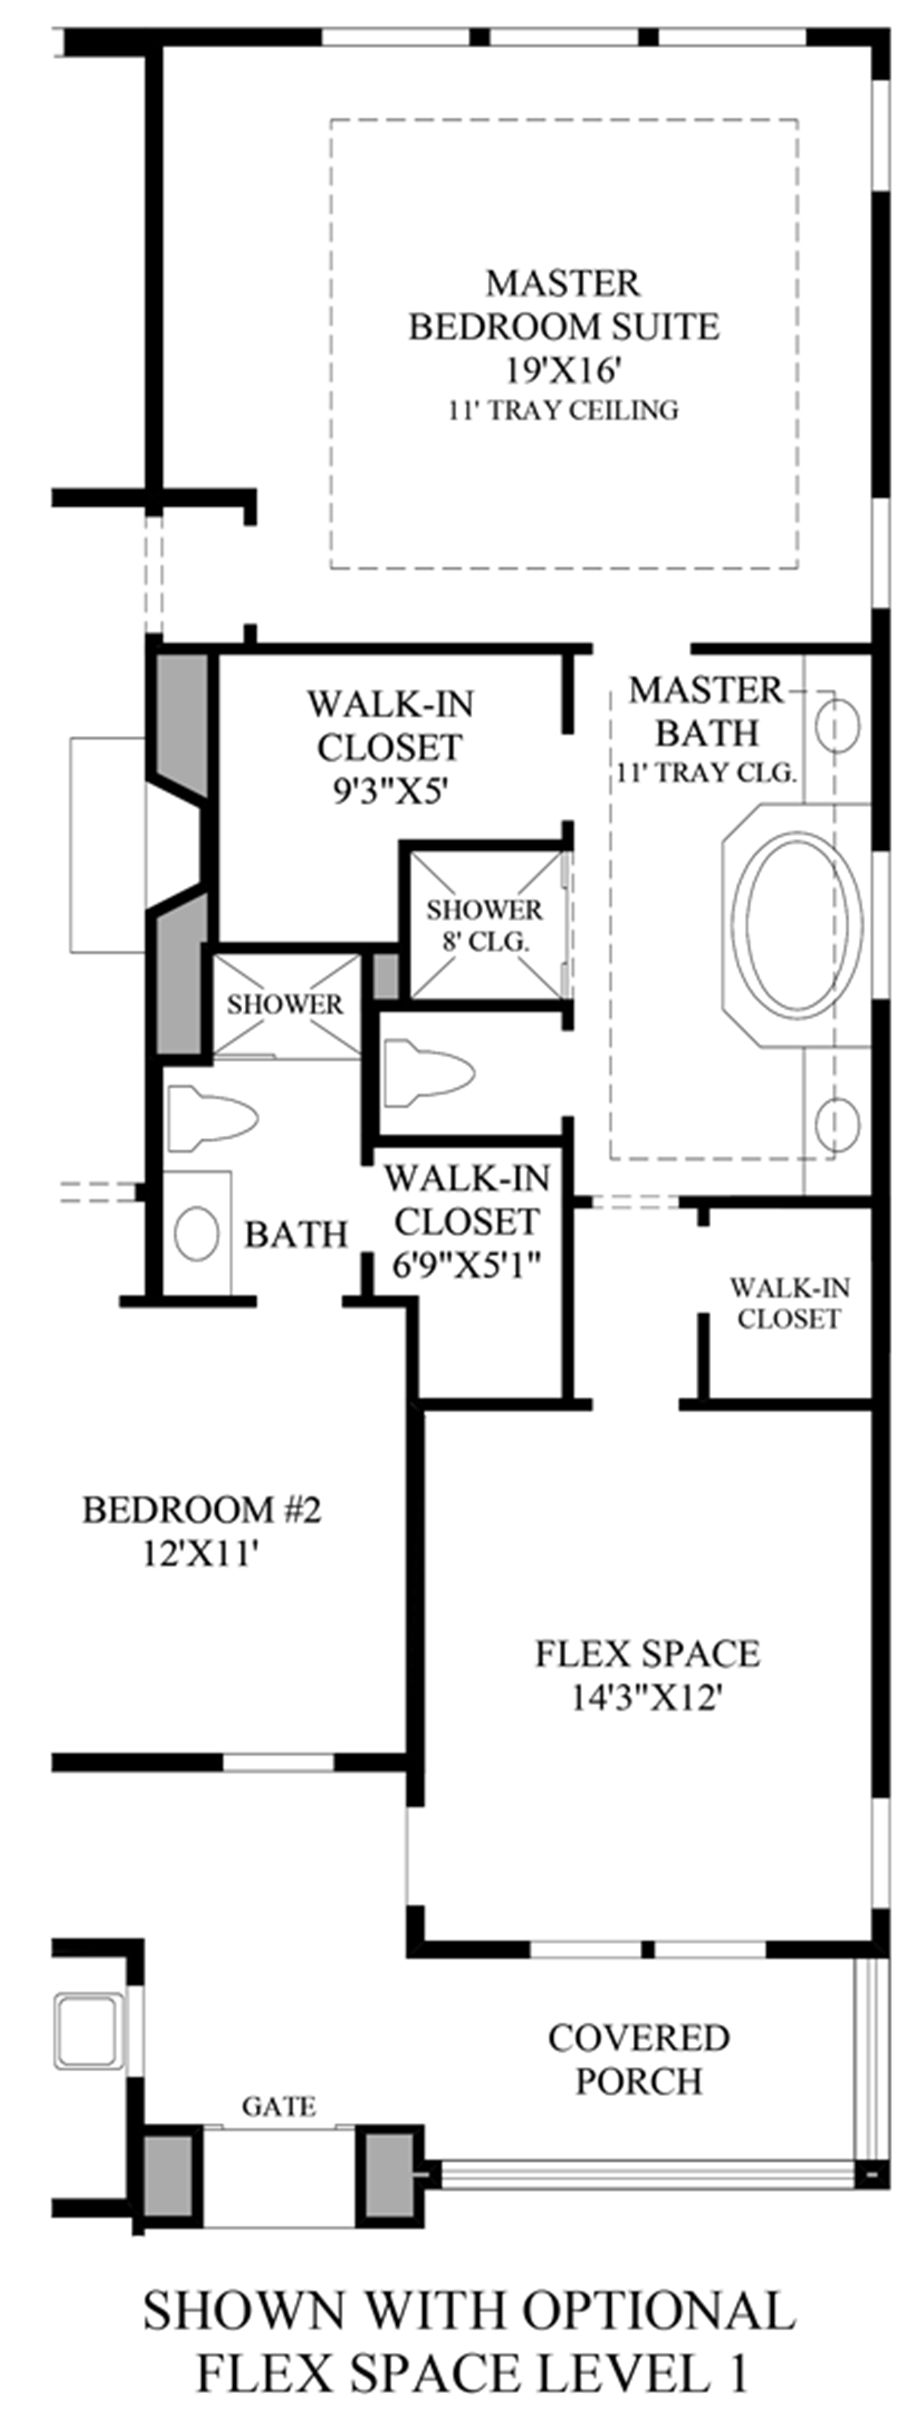 Optional Flex Space Level Floor Plan